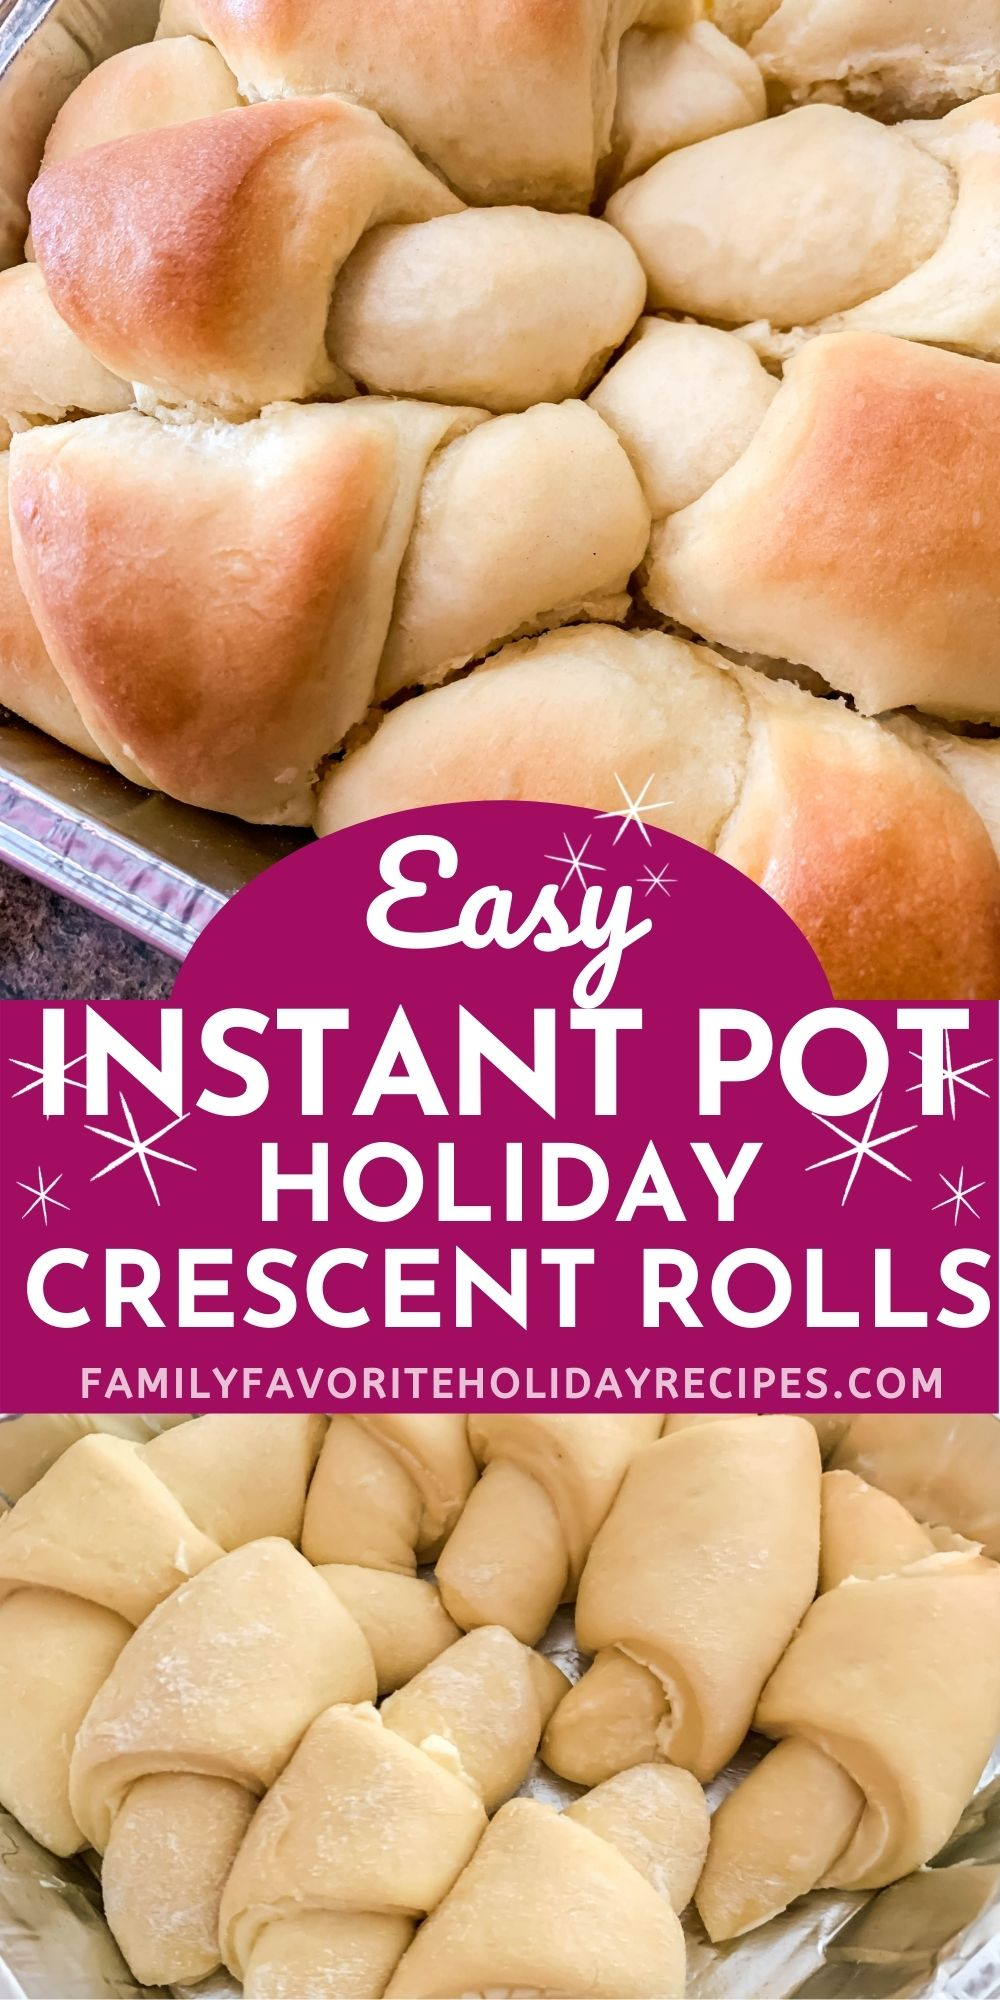 collage image featuring unbaked and baked crescent rolls in foil pans